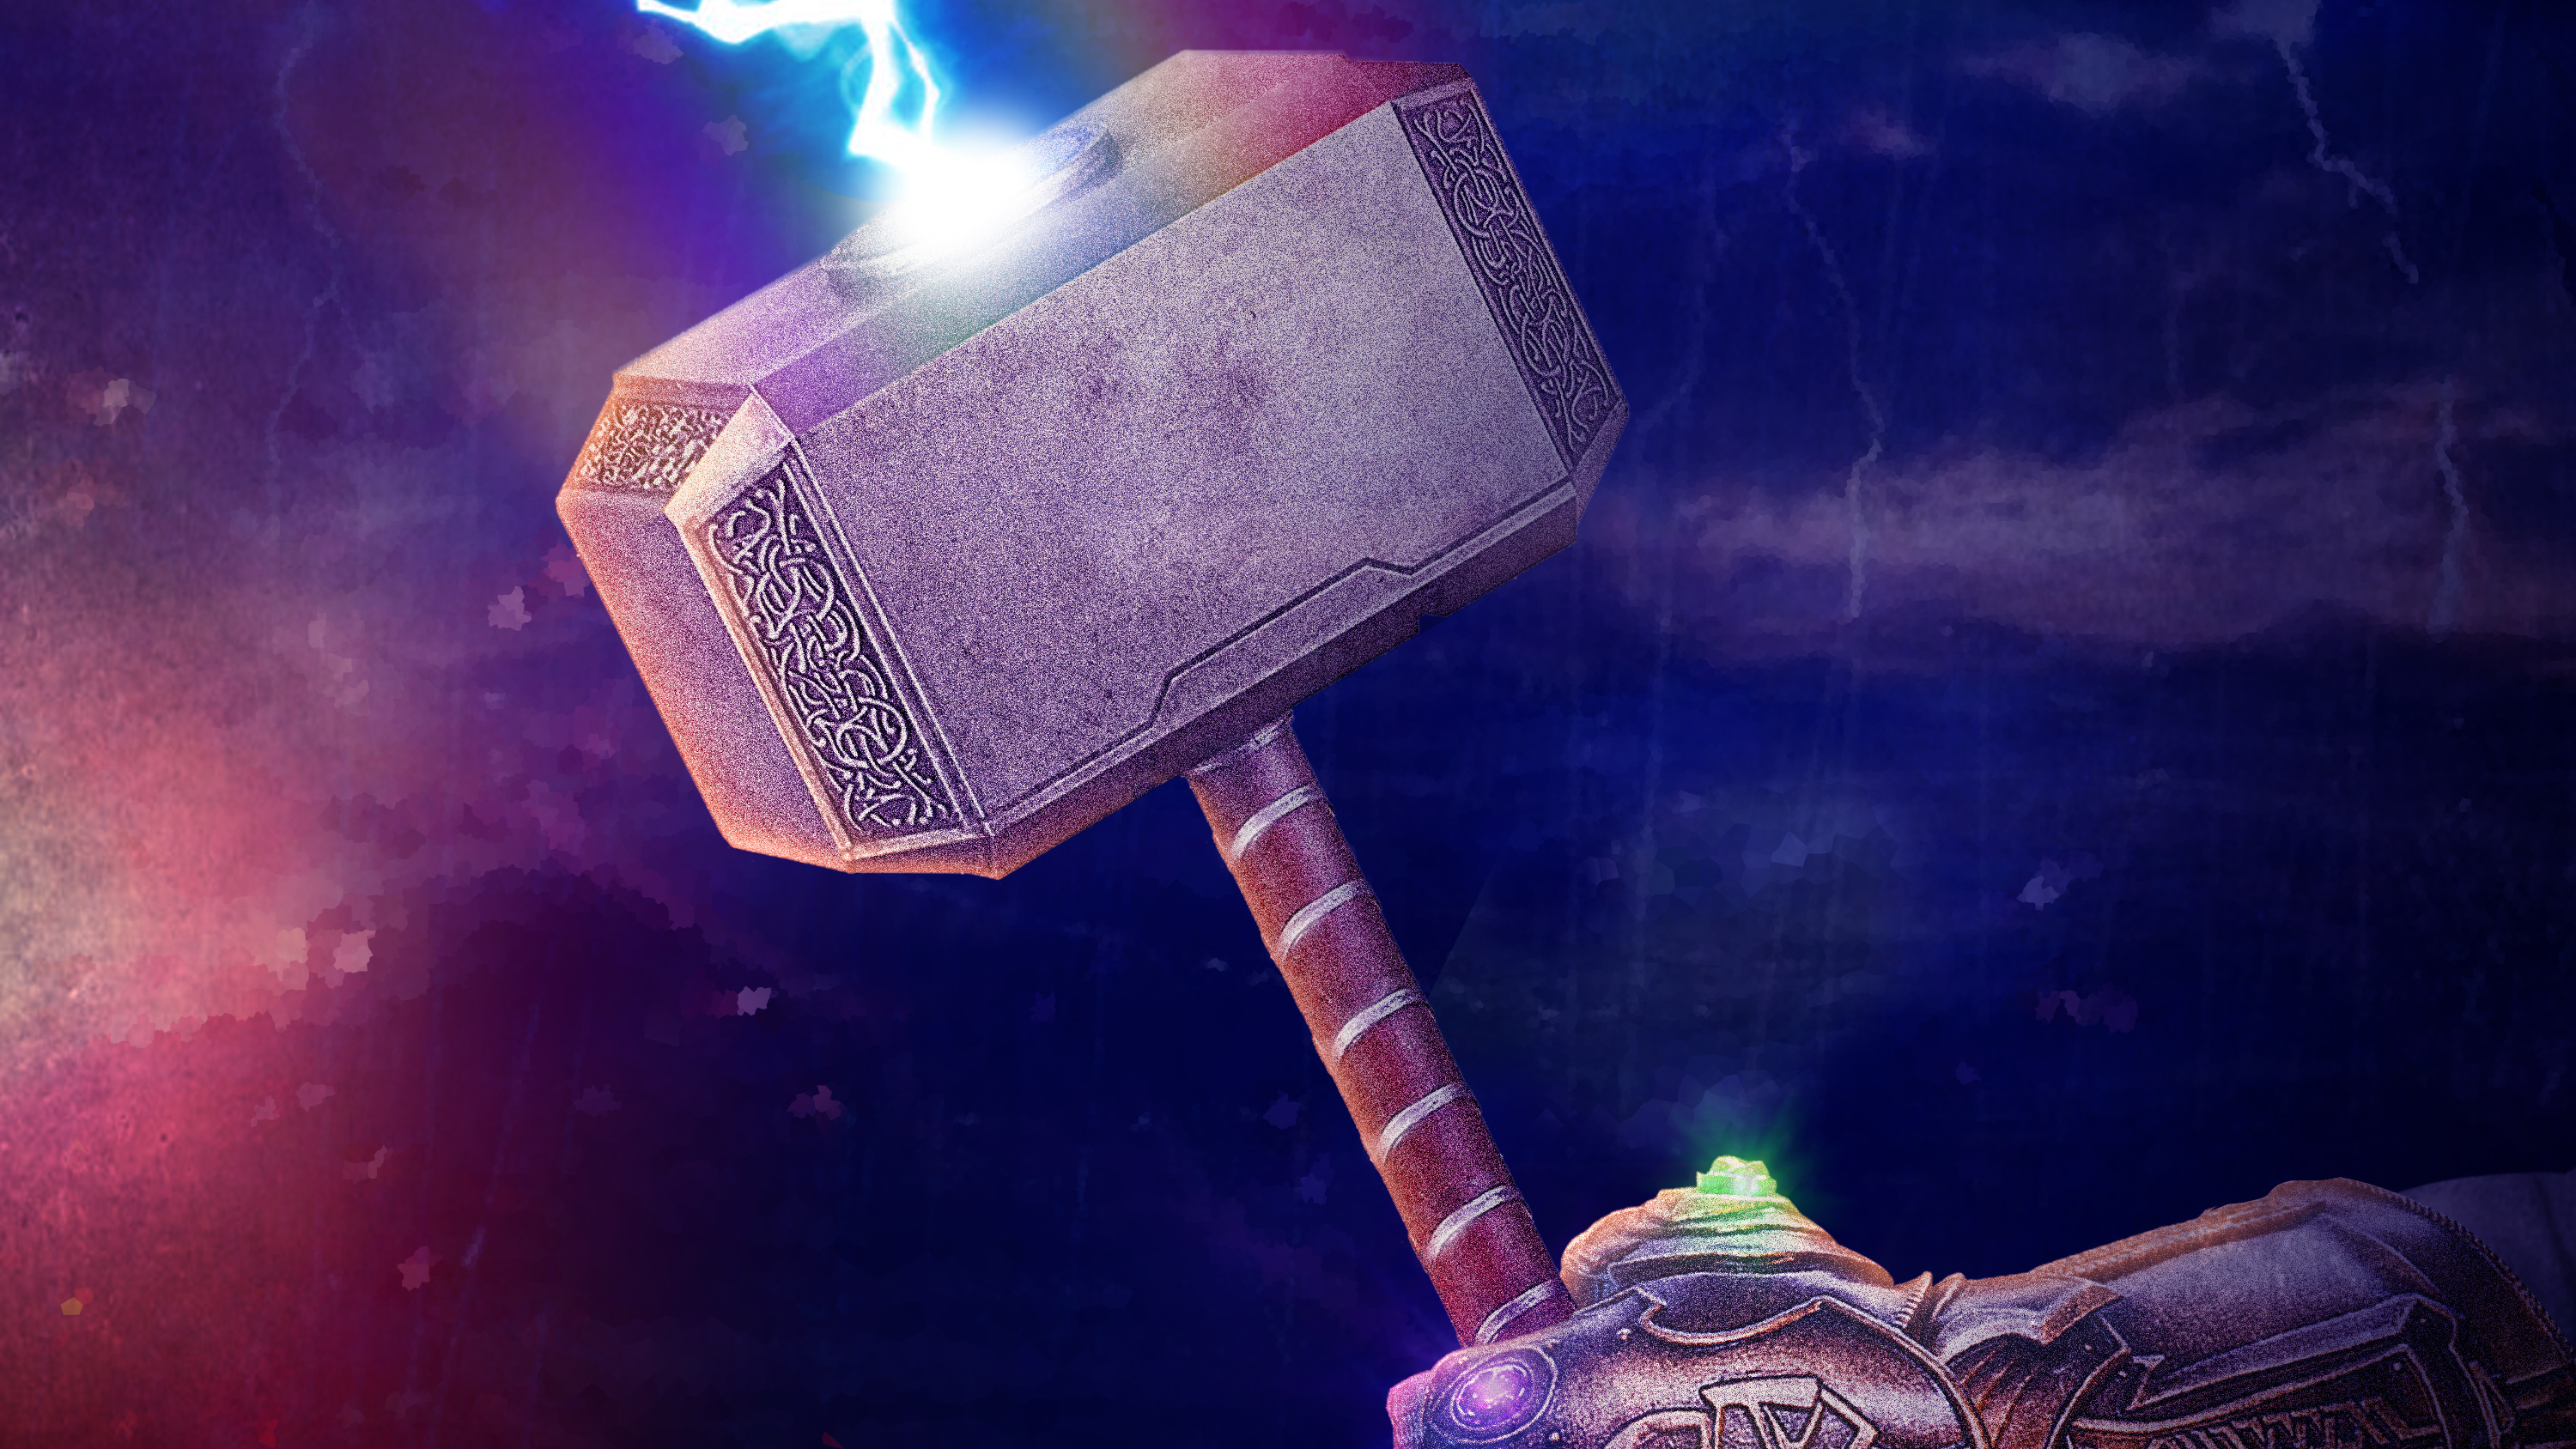 1920x1080 thanos gauntlet with thor hammer laptop full hd 1080p hd 4k wallpapers images - Thor hammer hd pics ...